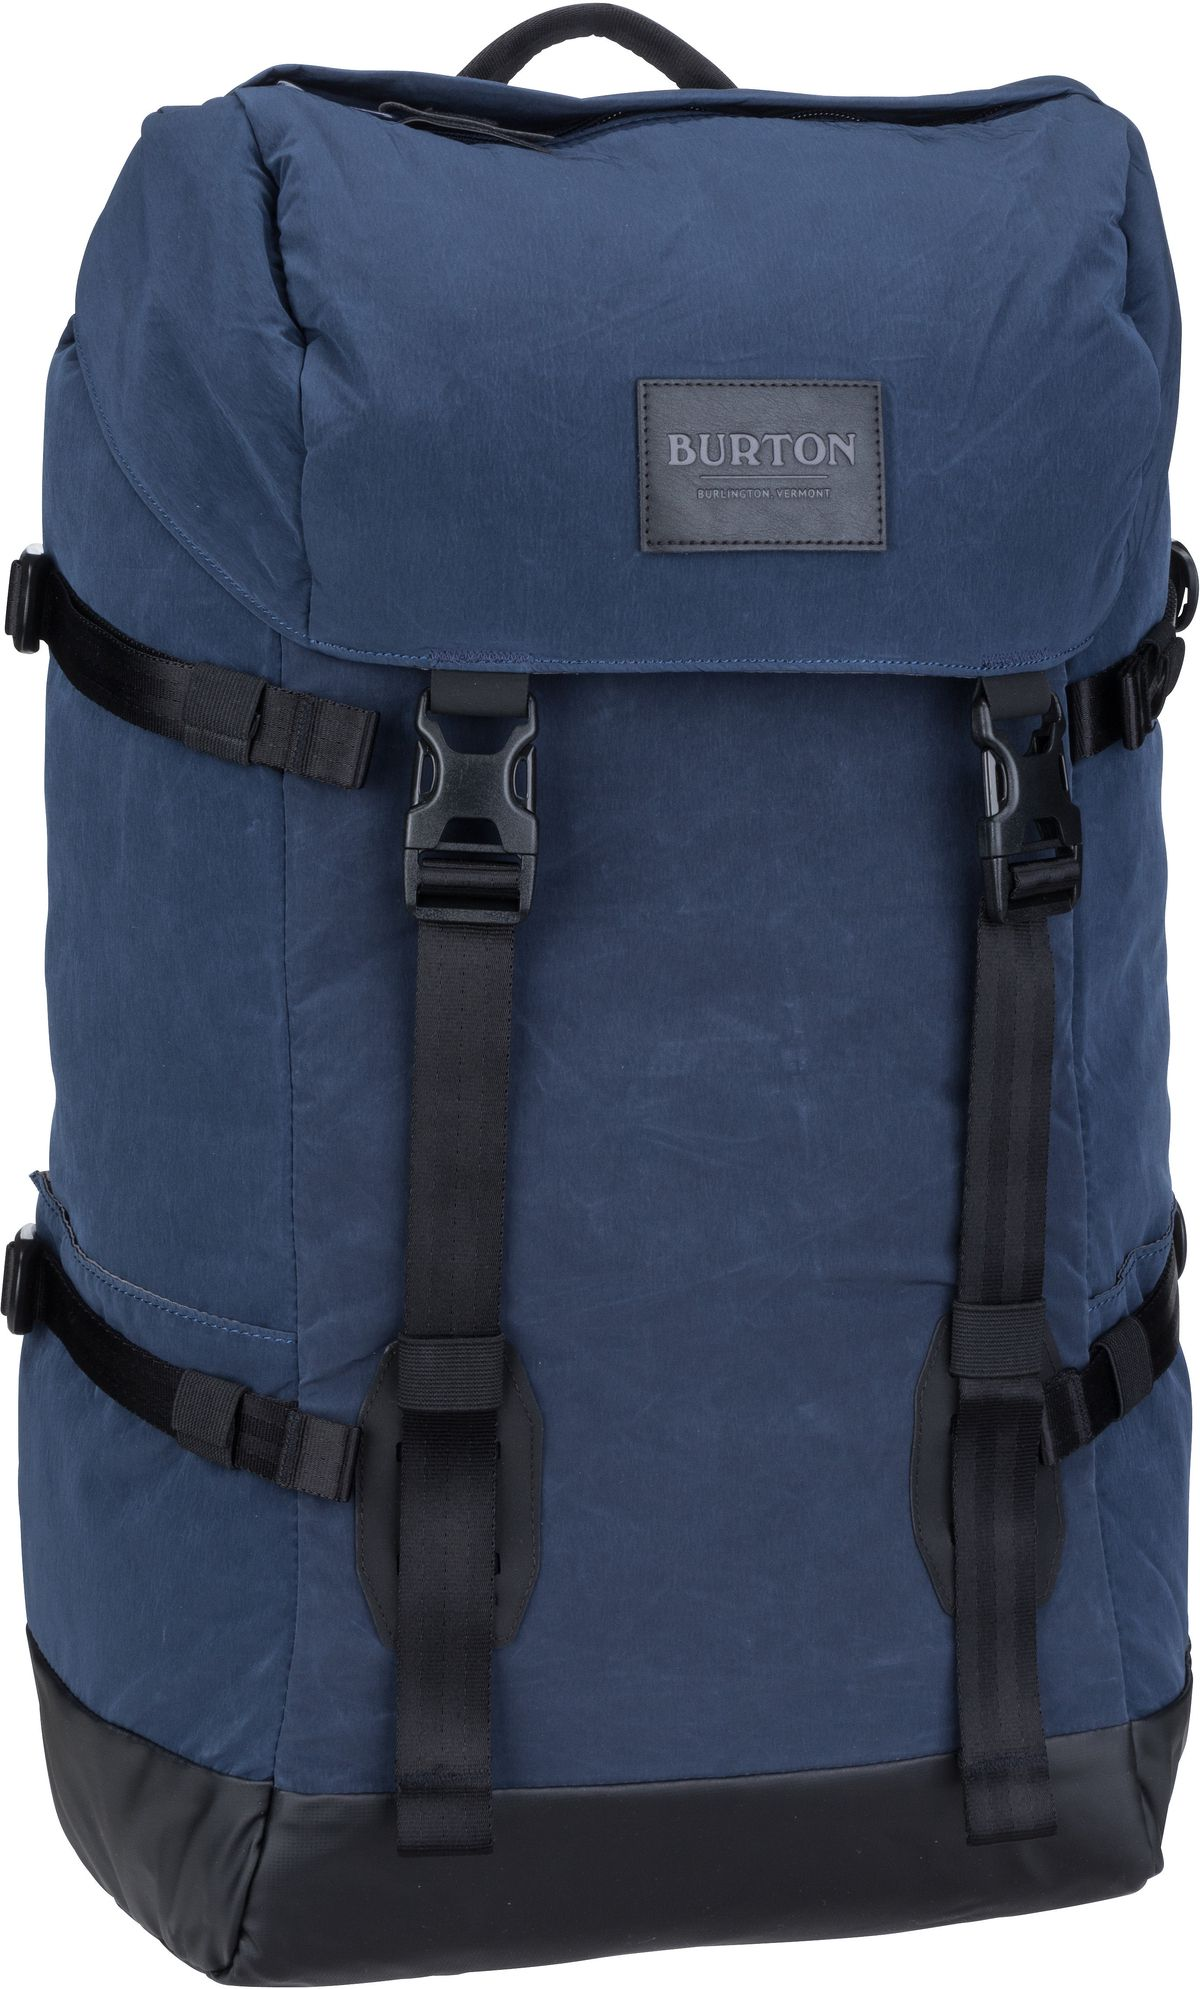 Laptoprucksack Tinder 2.0 30L Backpack Premium Dress Blue Air Wash (30 Liter)